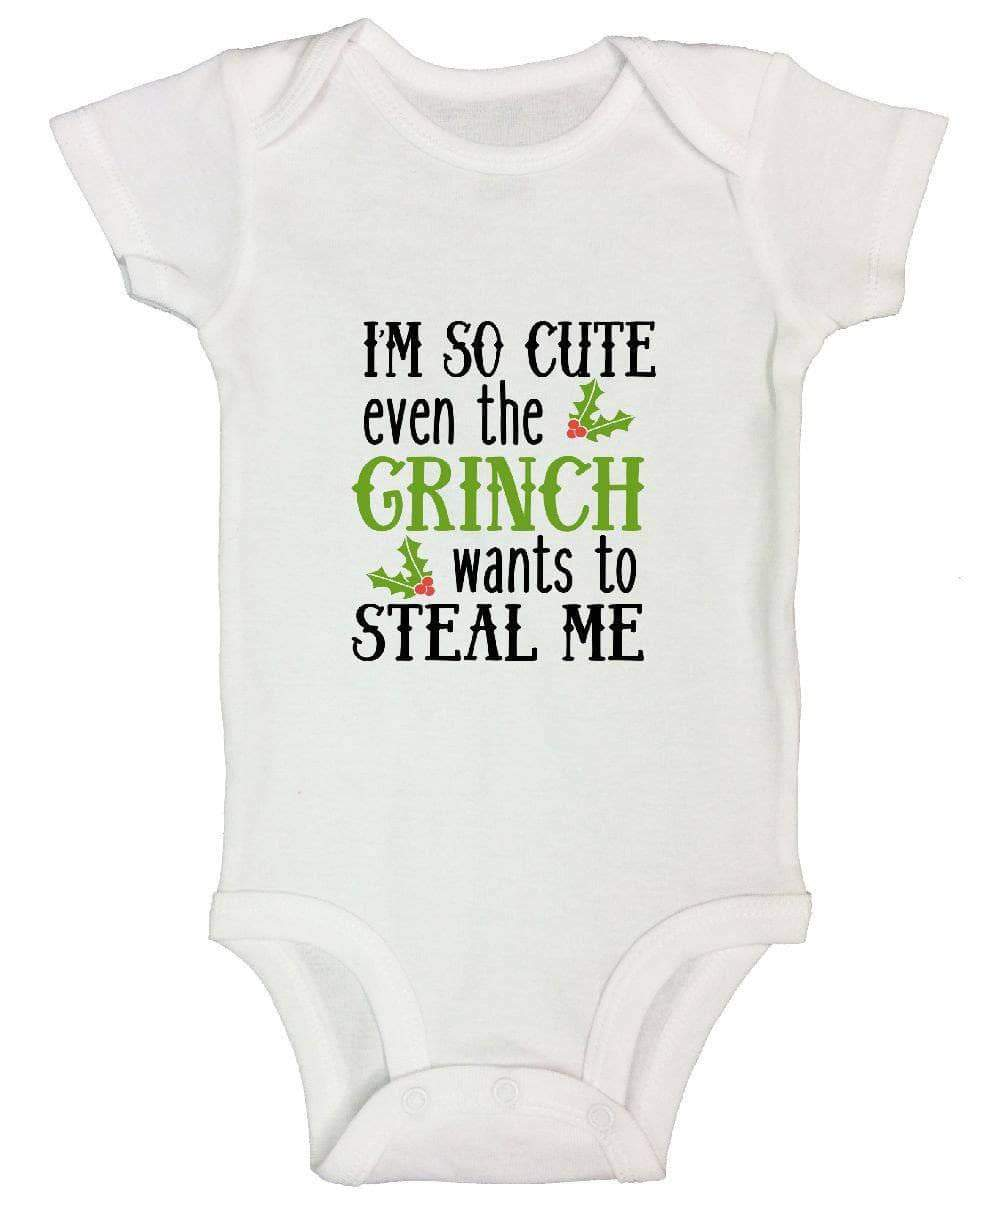 I'm So Cute Even The Grinch Wants To Steal Me FUNNY KIDS ONESIE Short Sleeve 0-3 Months Womens Tank Tops